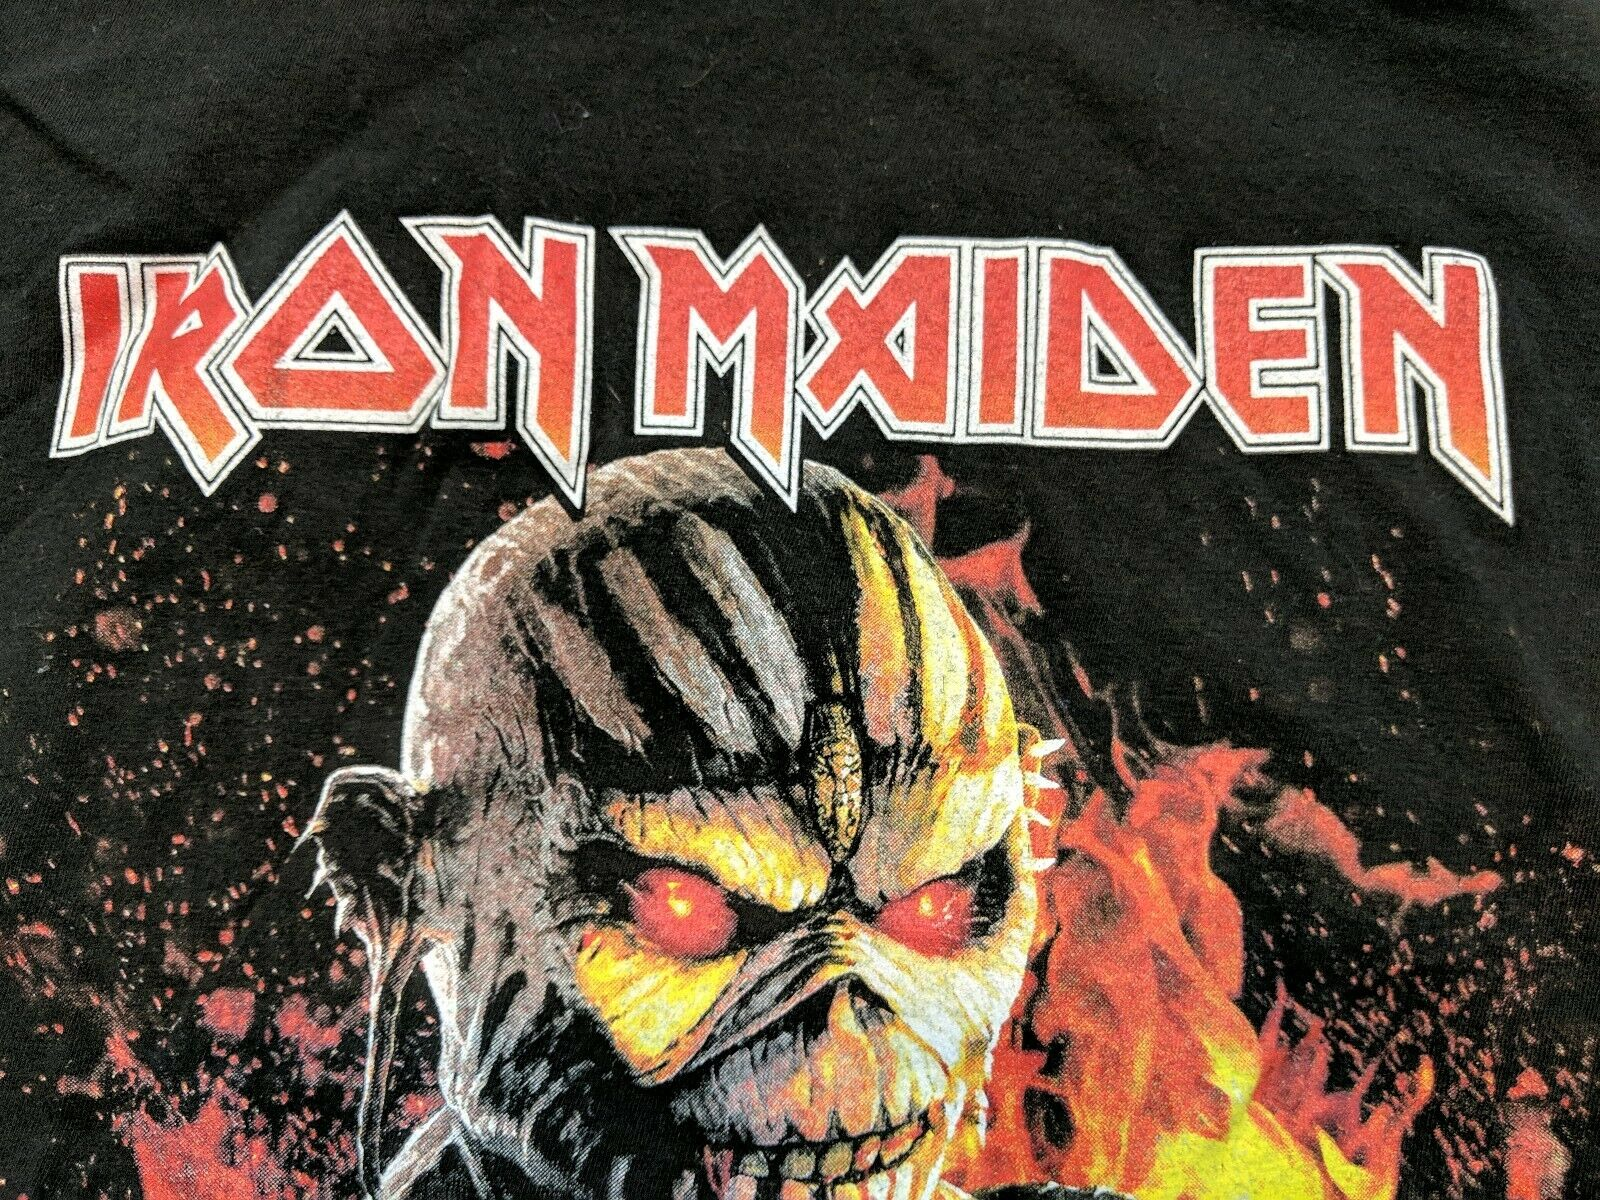 Iron Maiden Book Of Souls Tour 2017 T Shirt For Sale Online Ebay